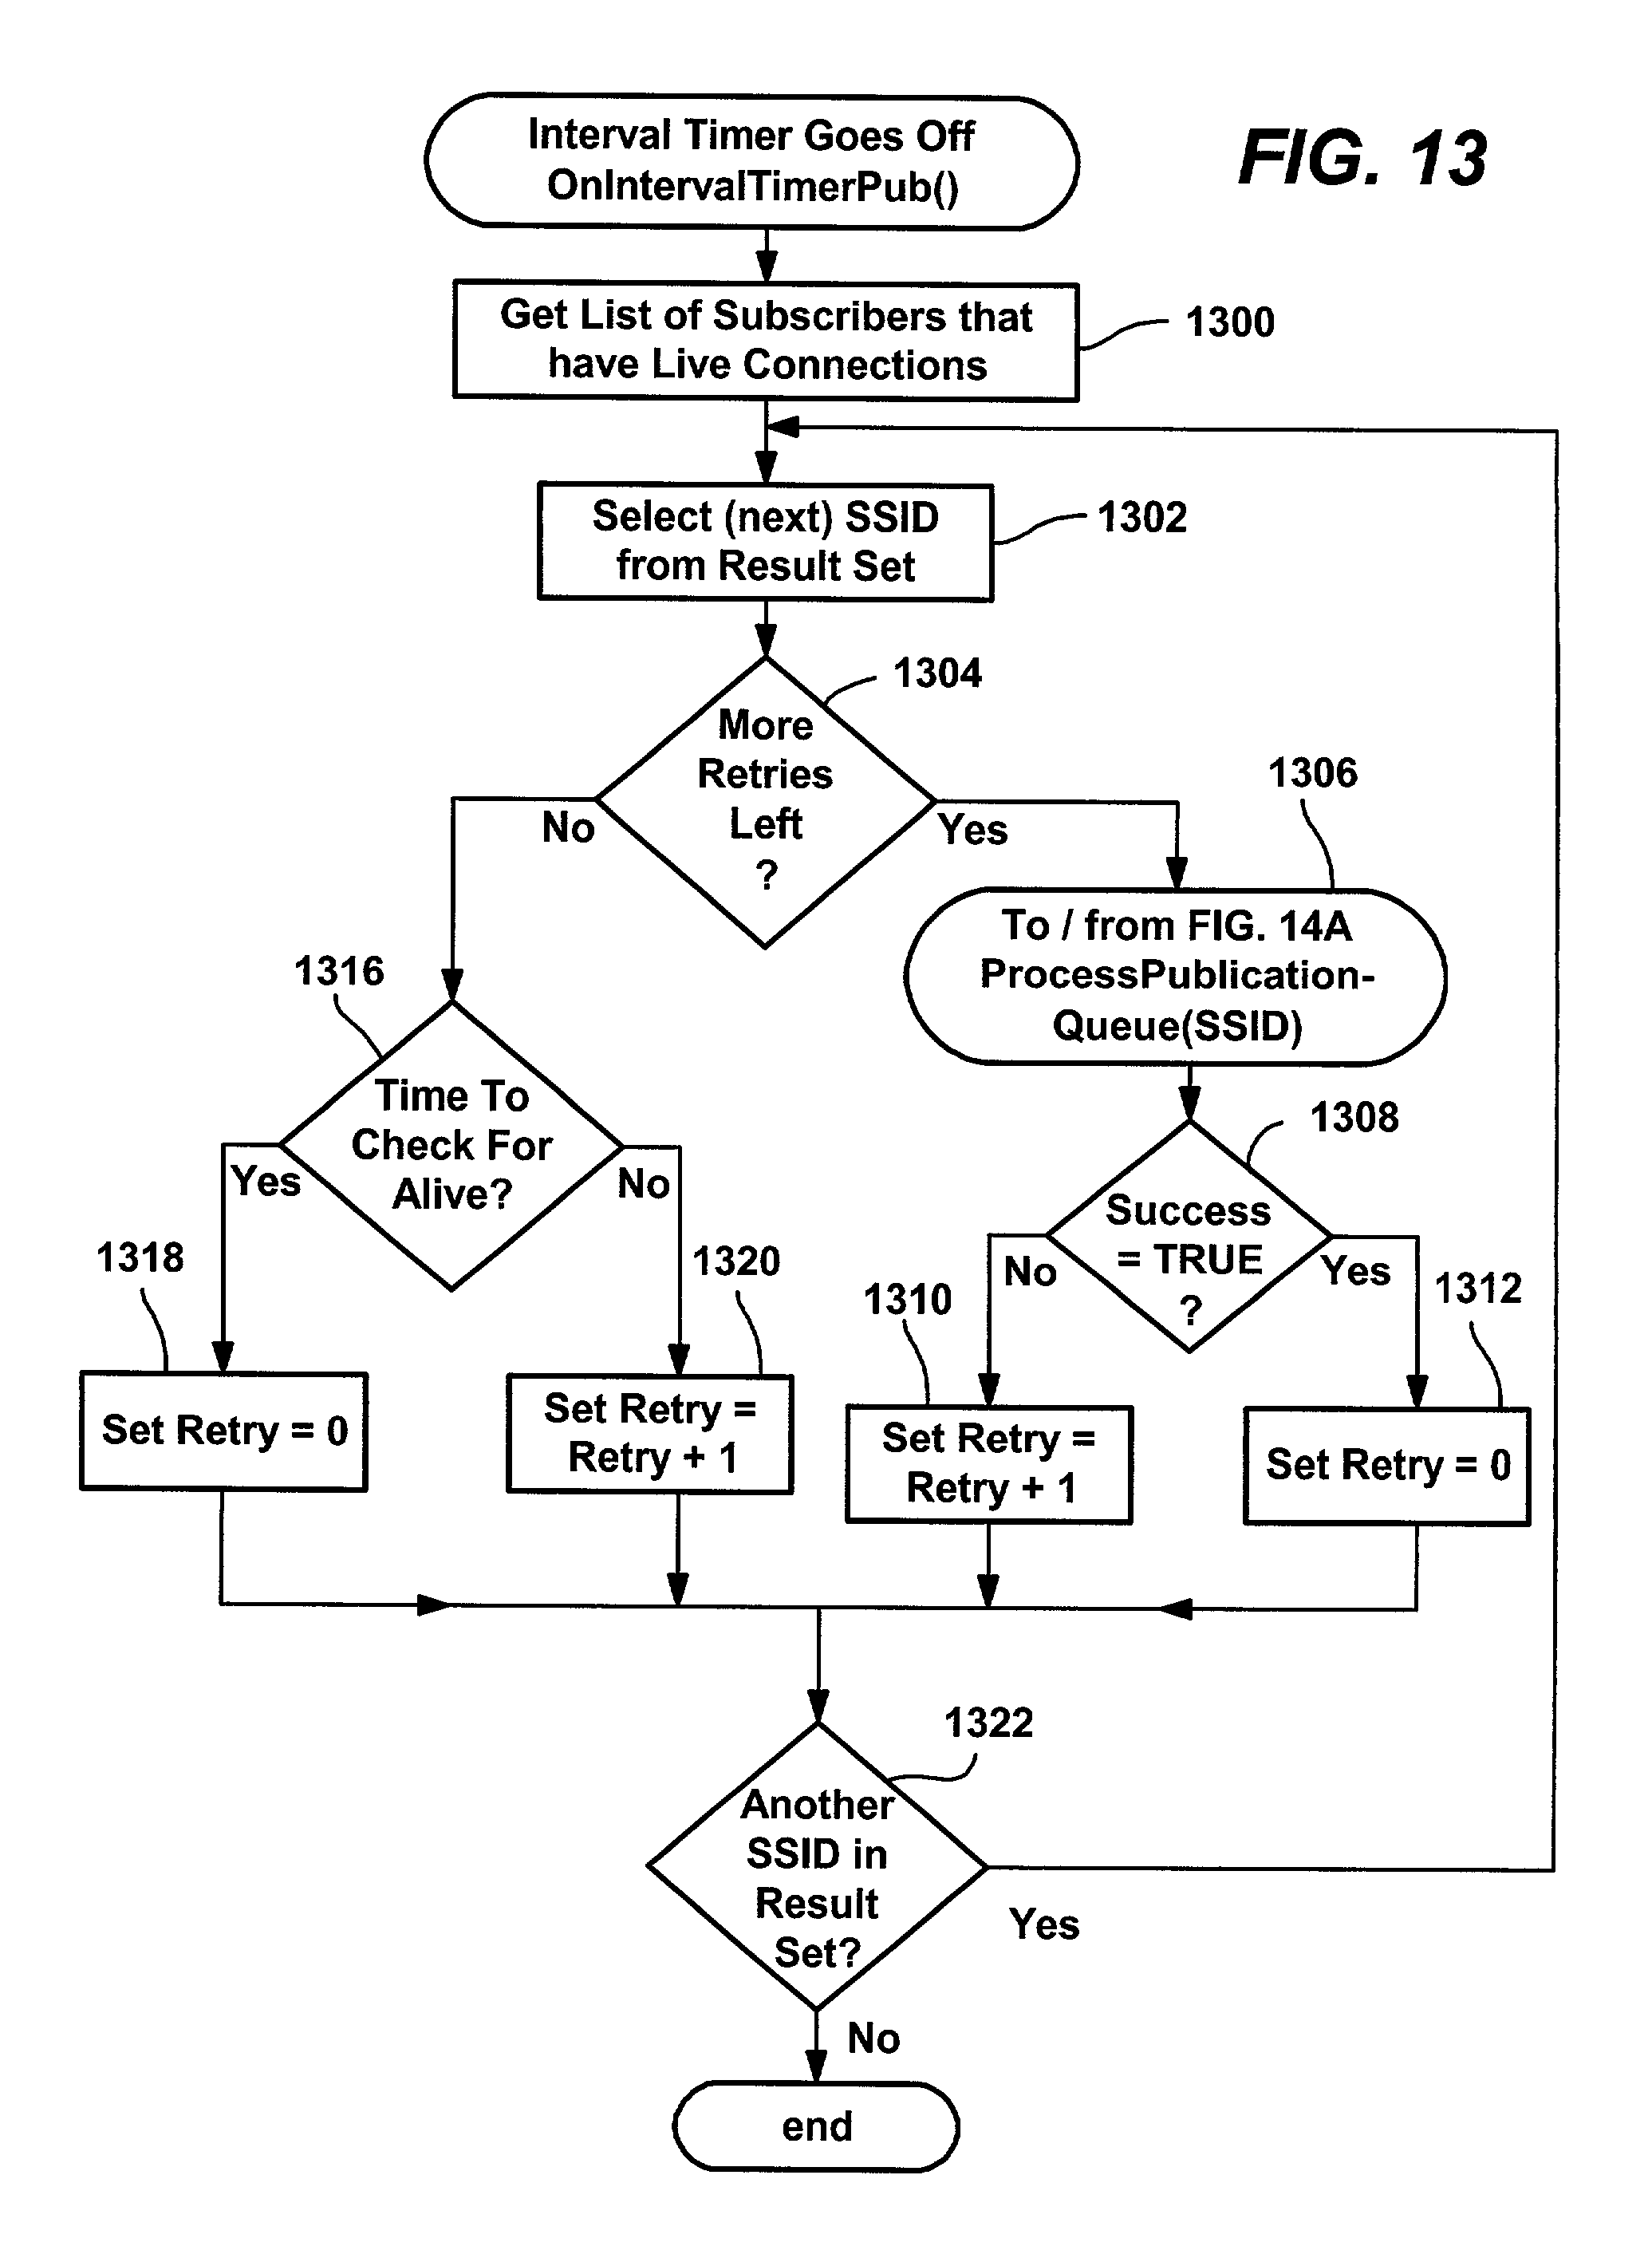 Us7302634b2 schema based services for identity based data access patents